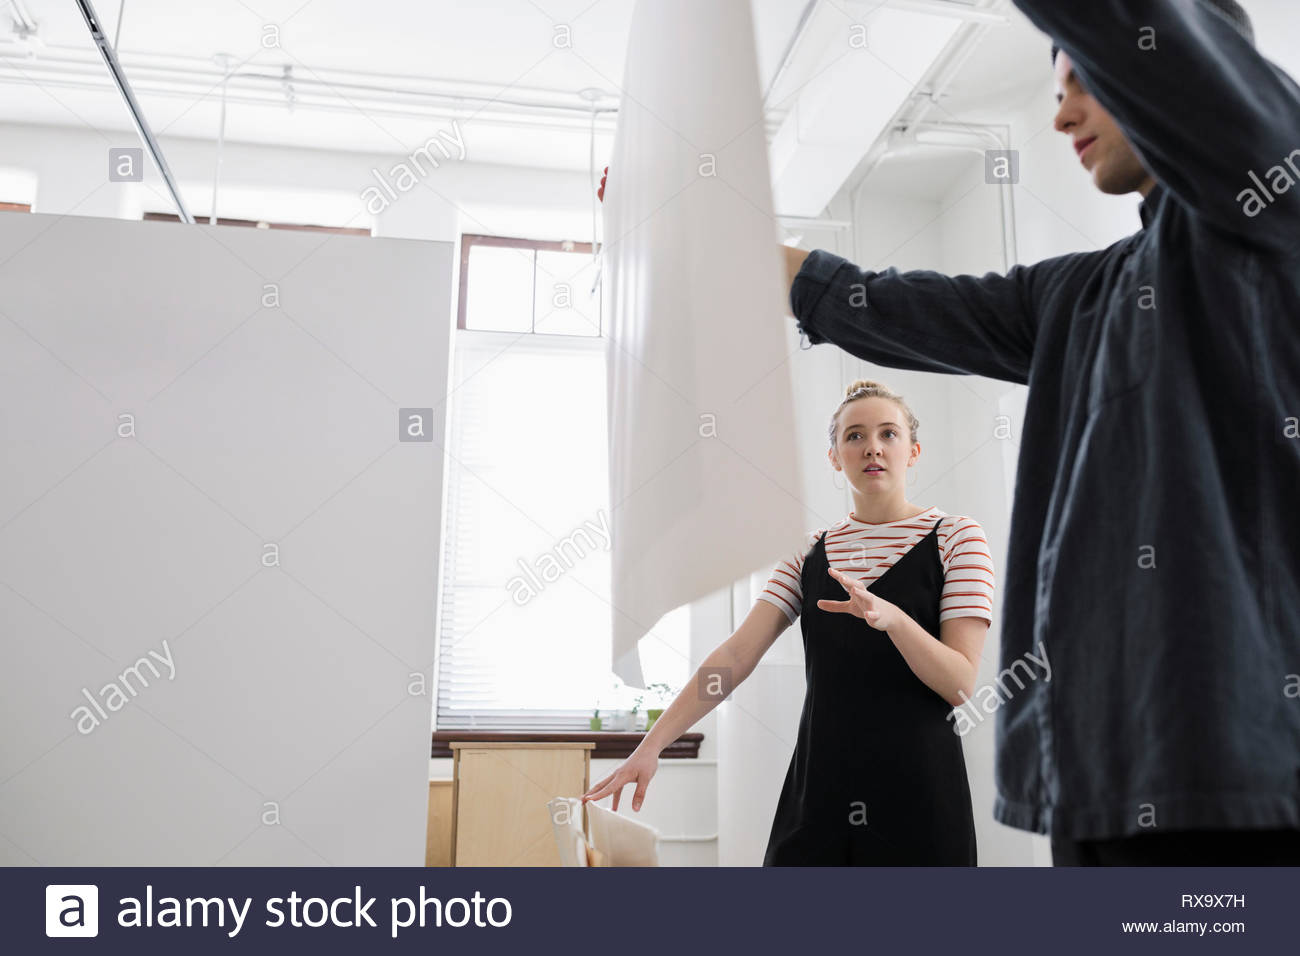 Artists hanging print in art gallery - Stock Image